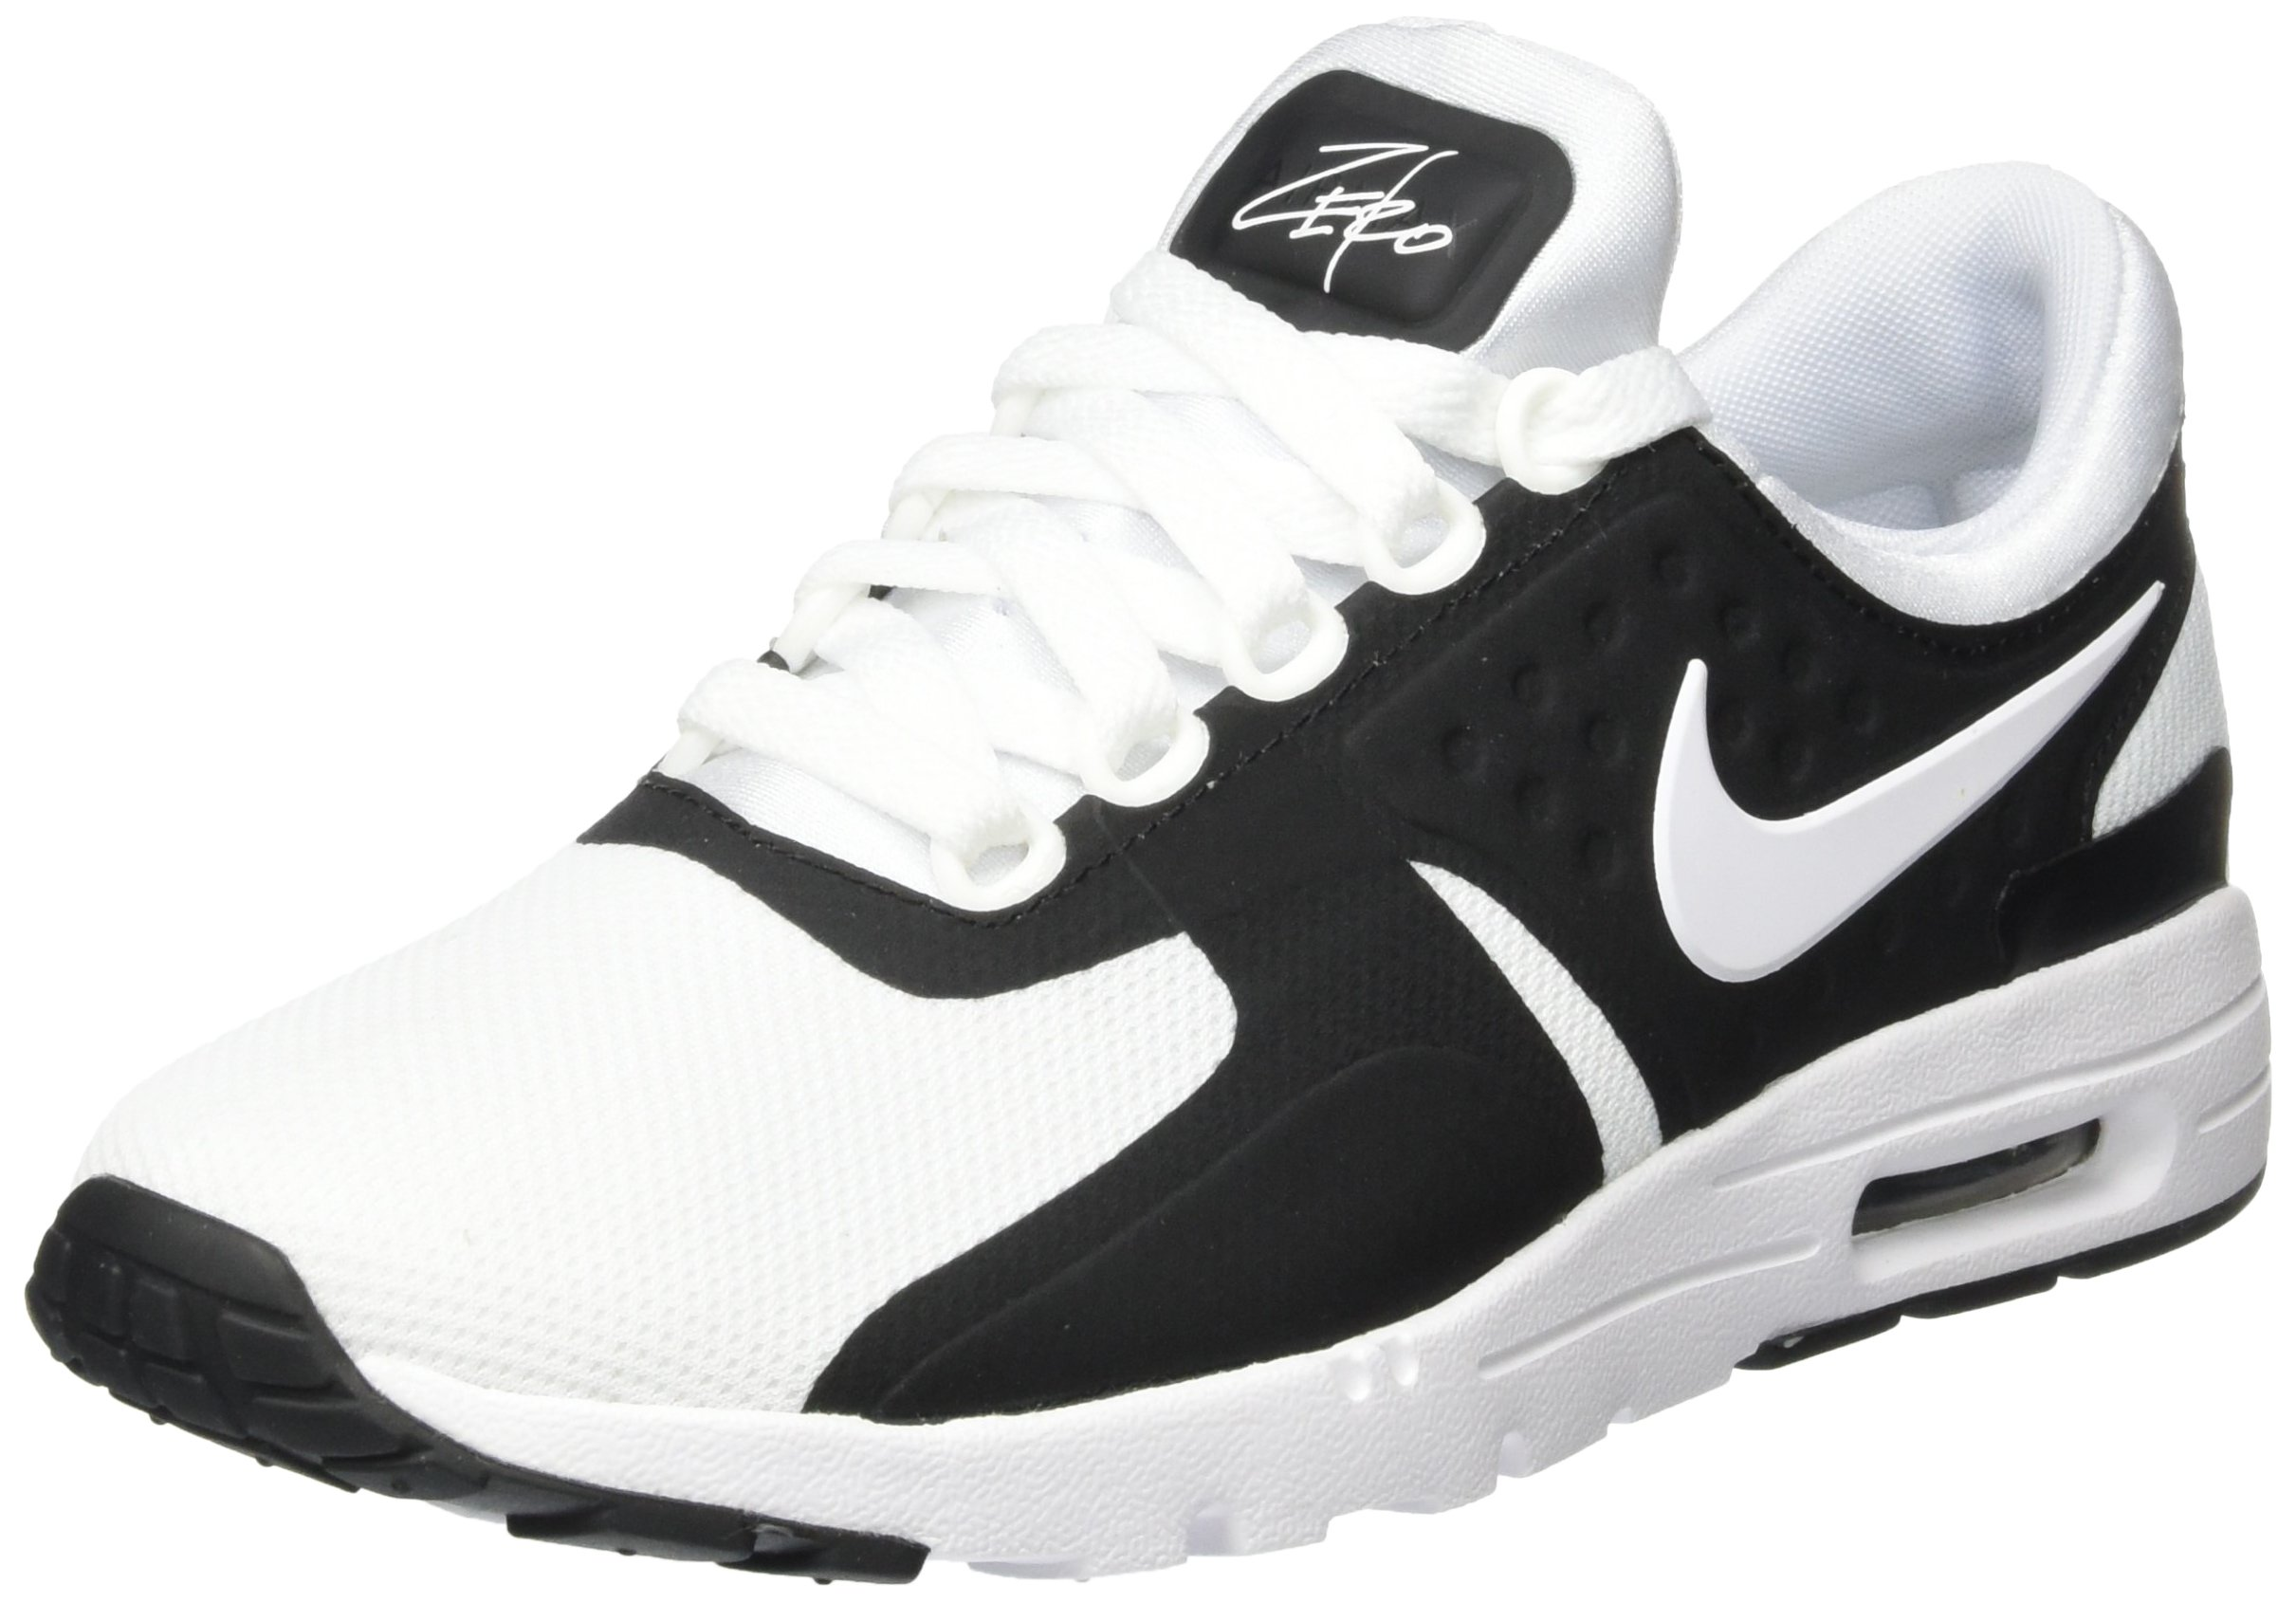 sale retailer 726af bae32 NIKE Air Max Zero Womens Running Shoes Black/White (8.5)